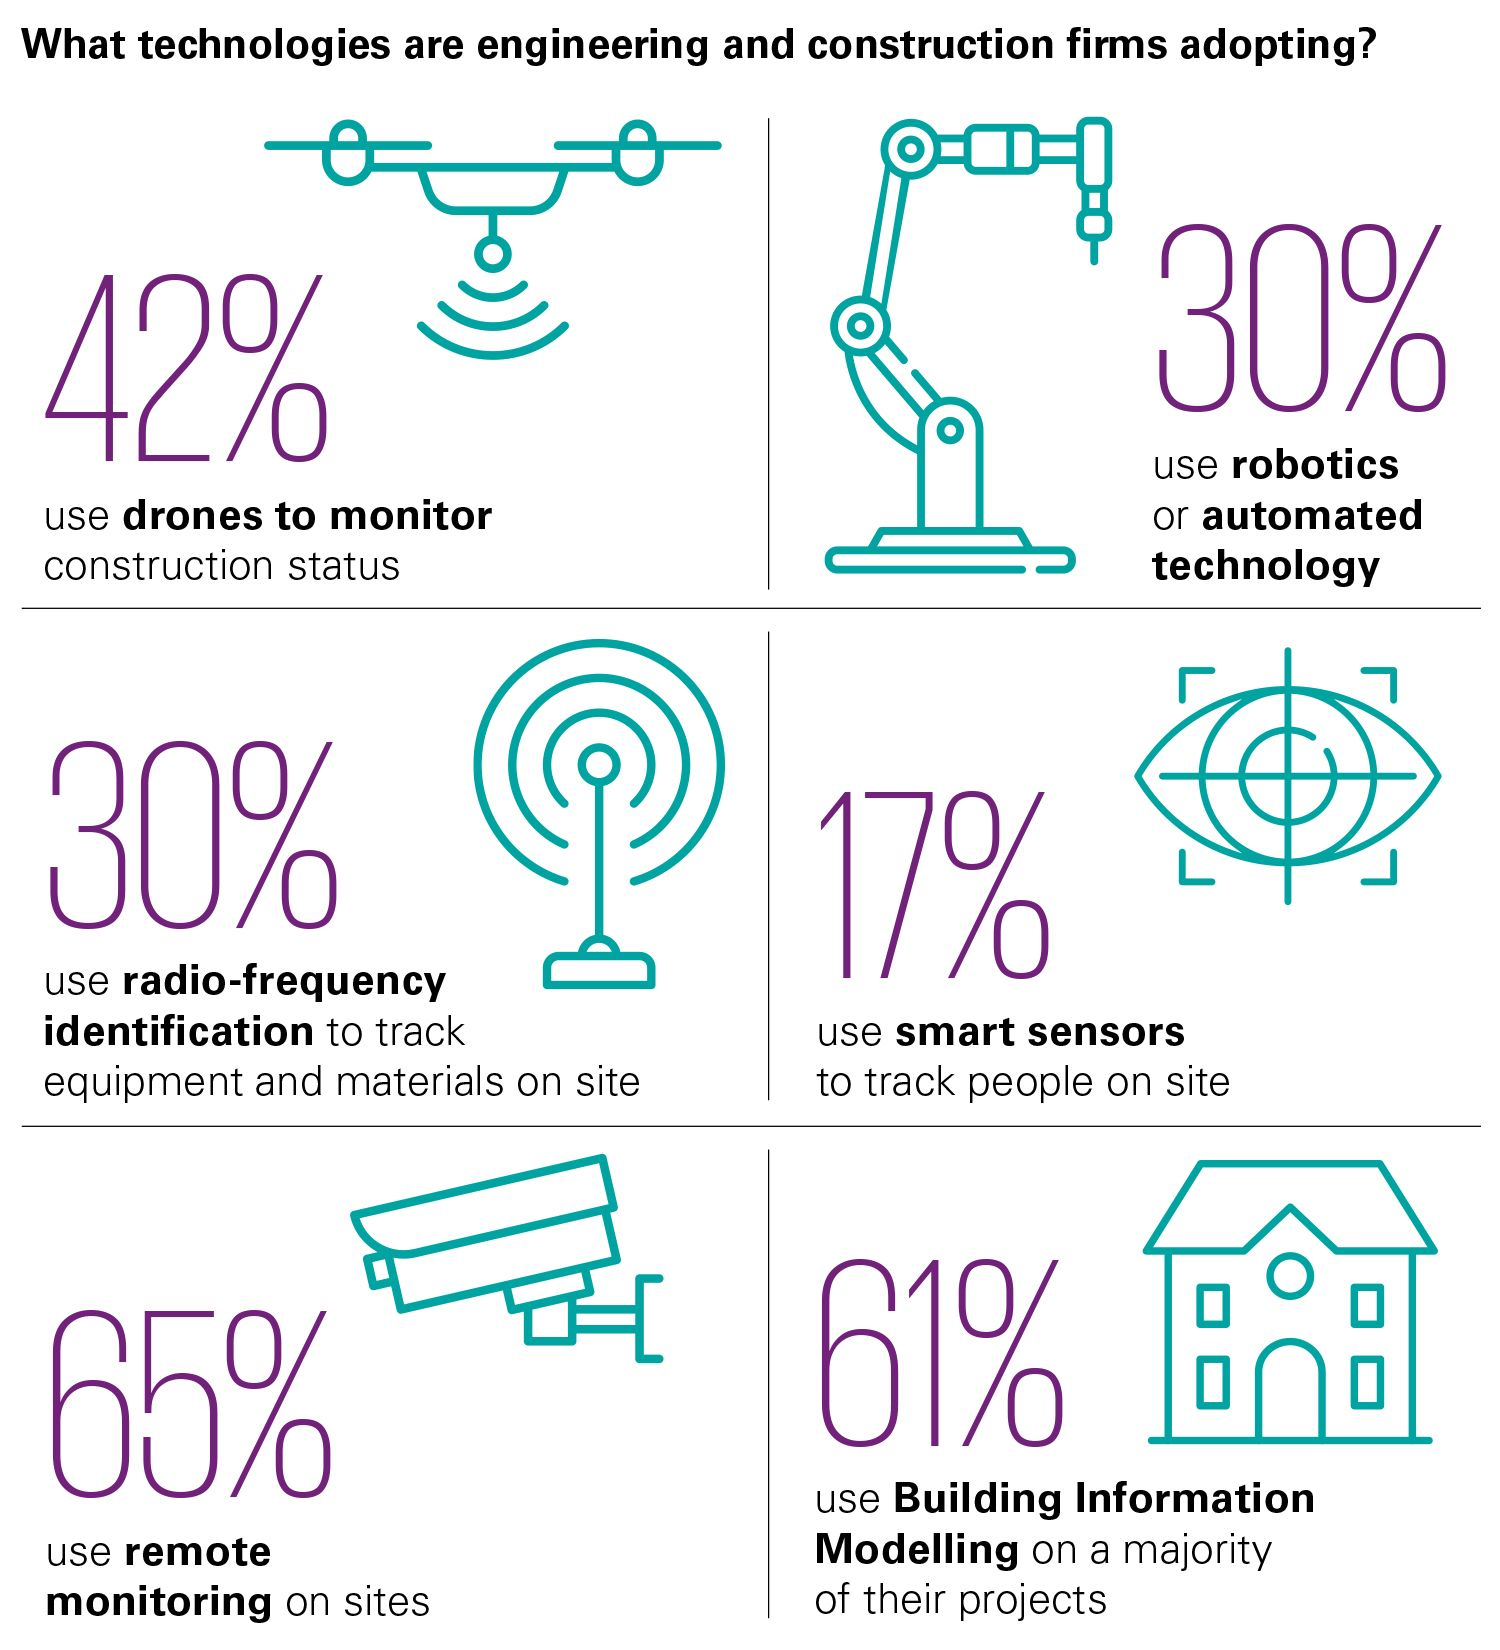 Technologies being adopted by engineering and construction firms